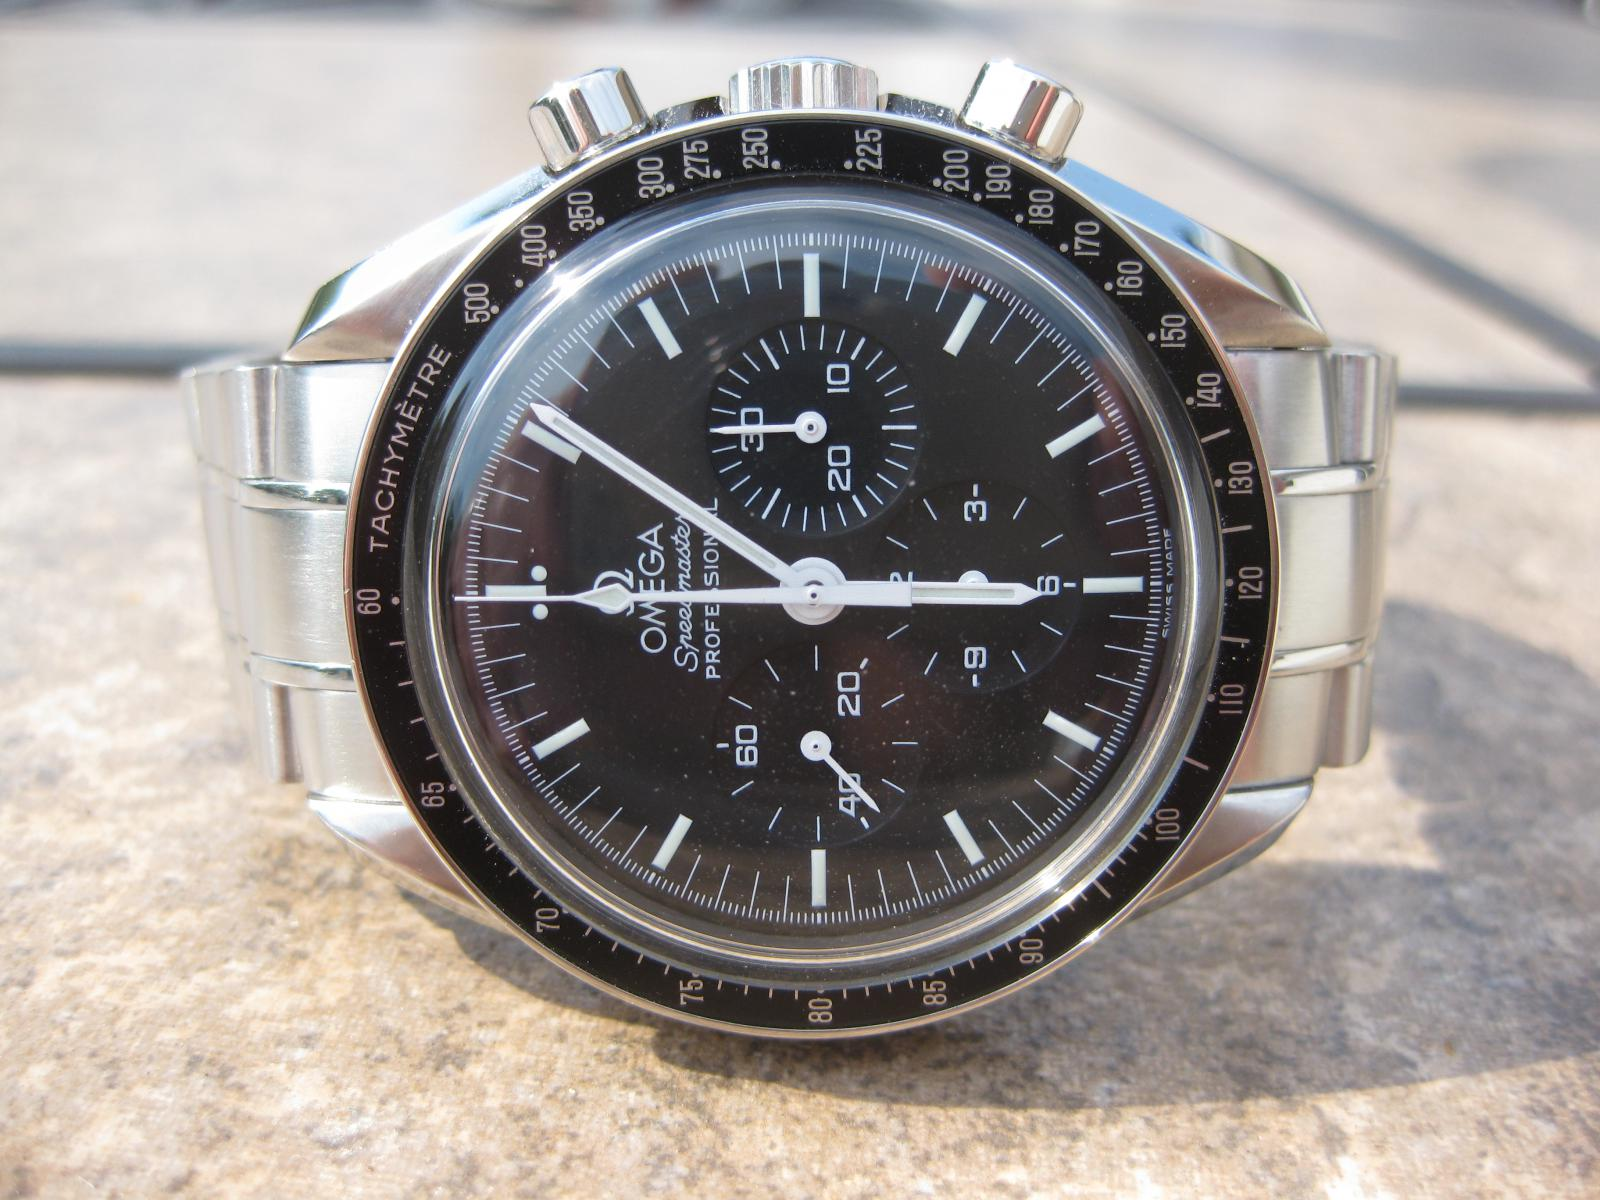 Lets see your Omega-img_0694.jpg